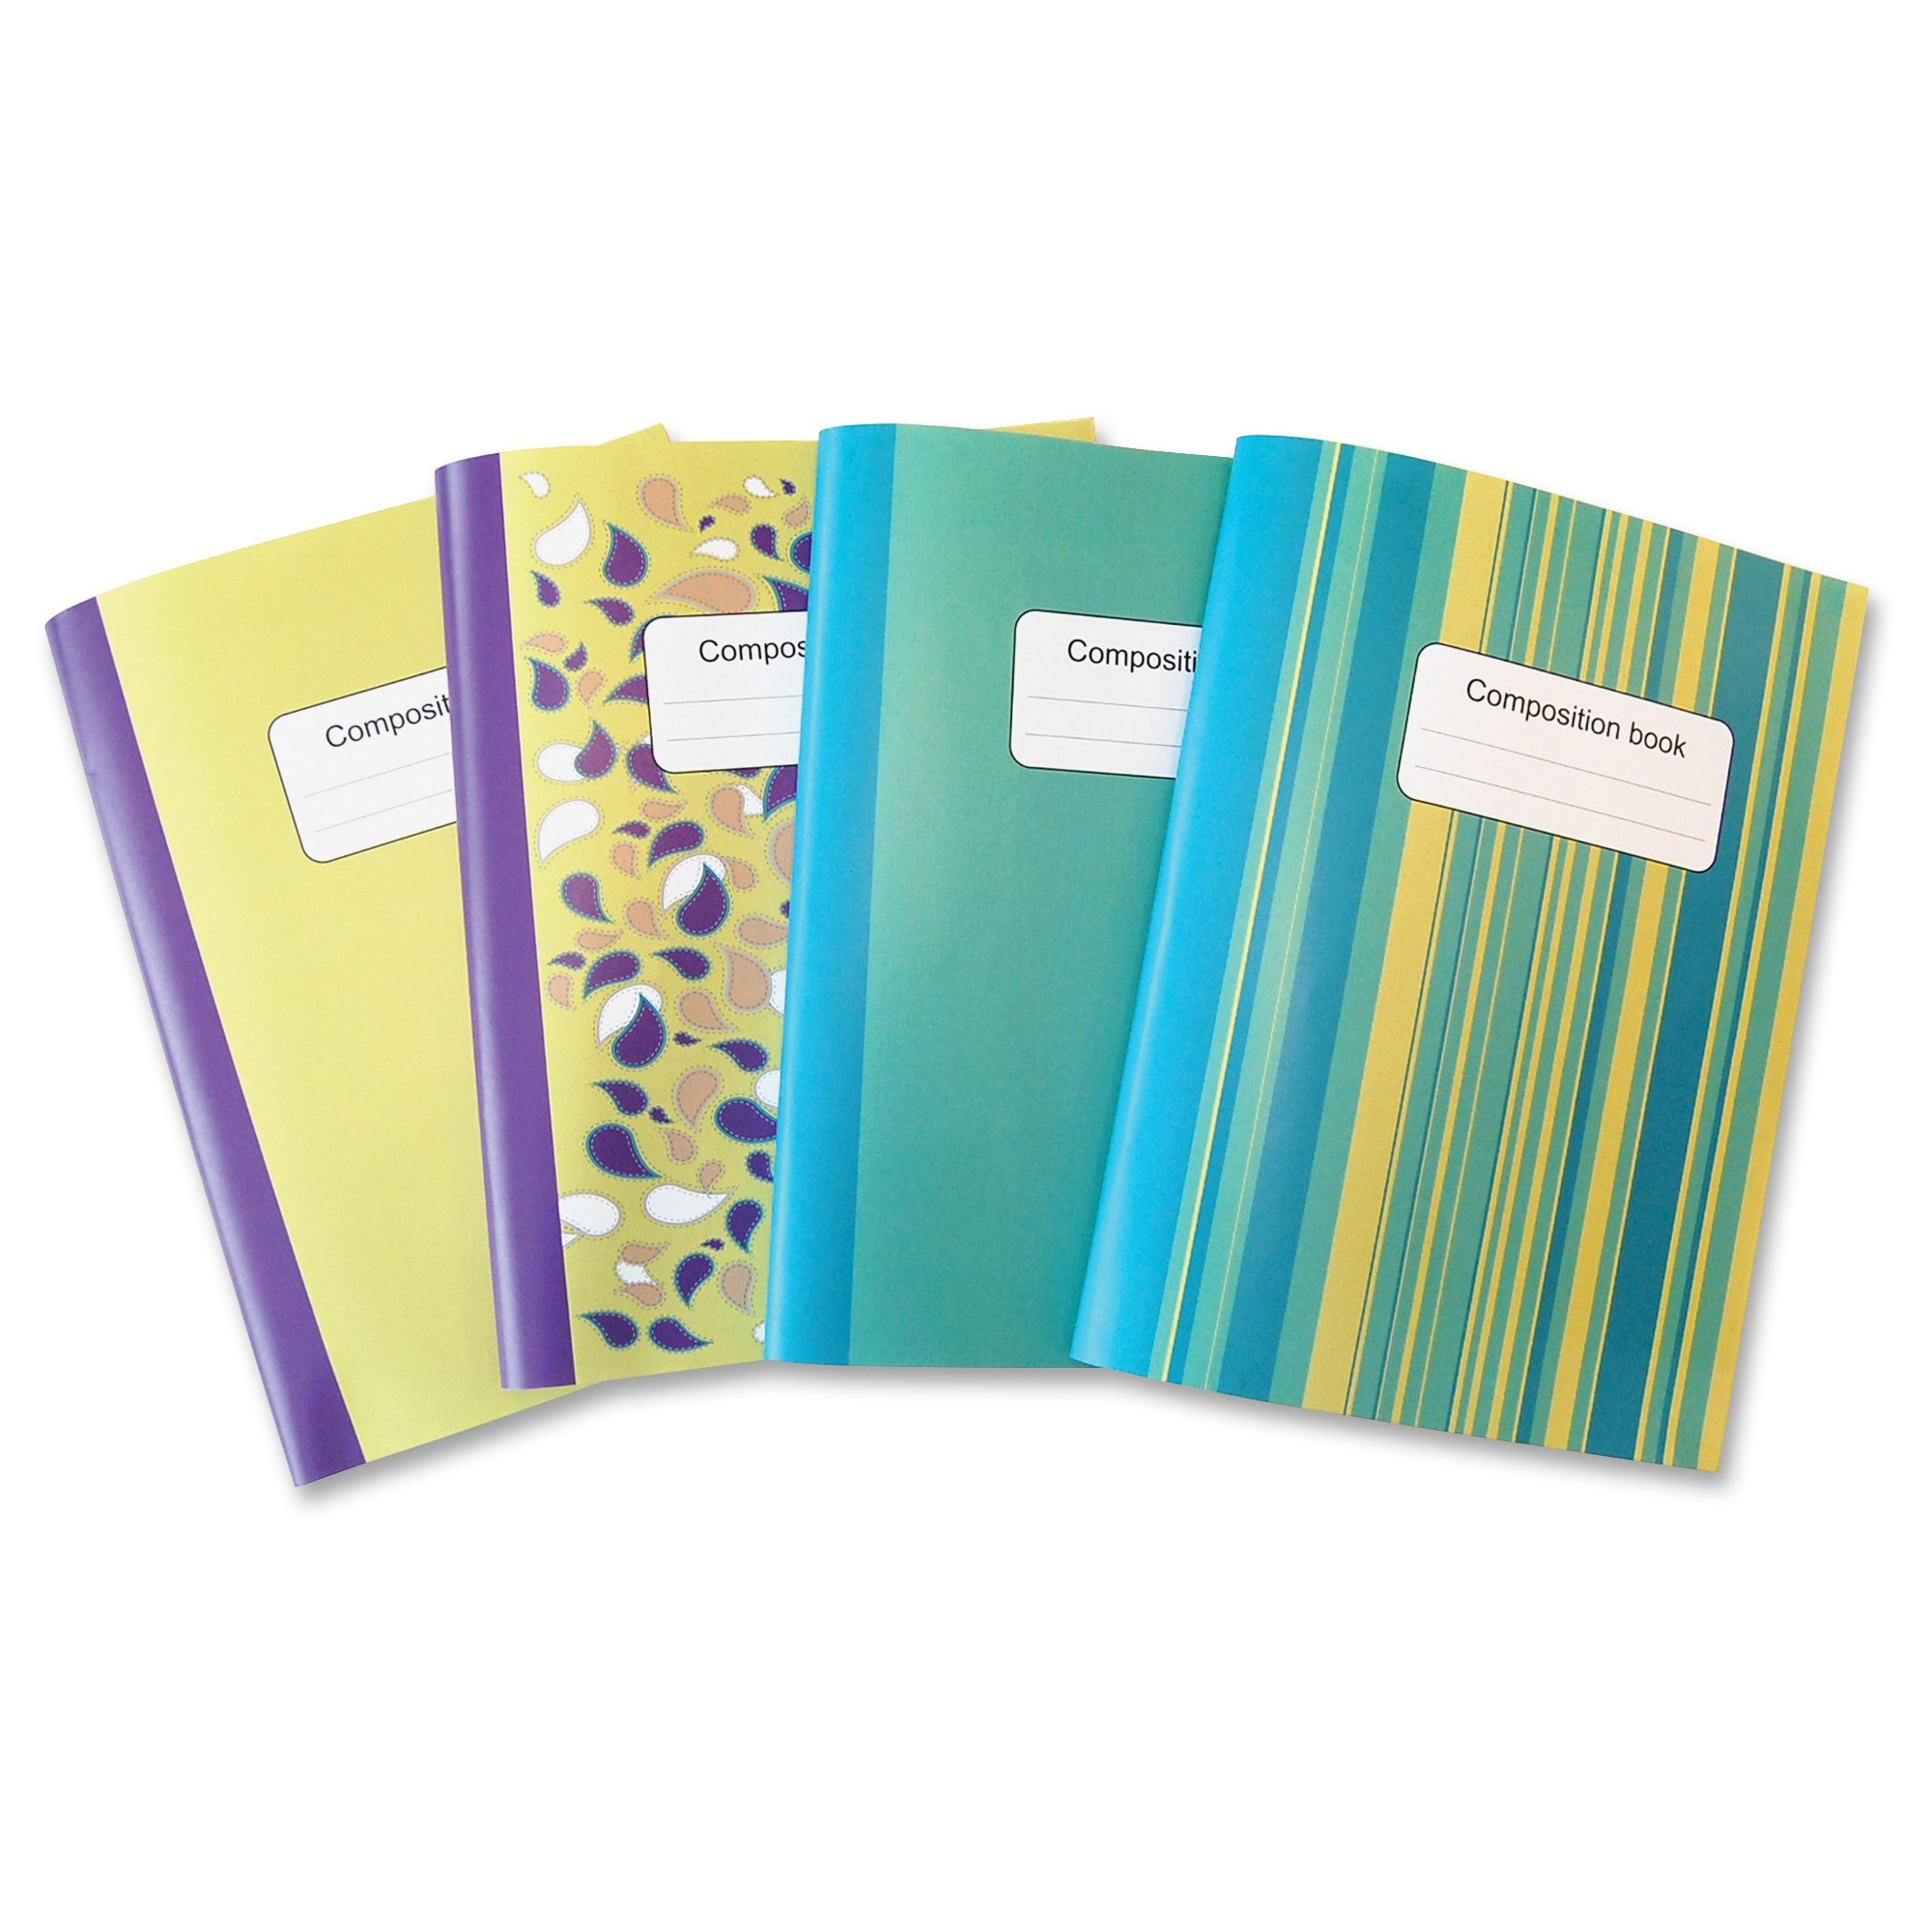 Sparco Composition Books - College Ruled - 4 / Pack (spr-36125)